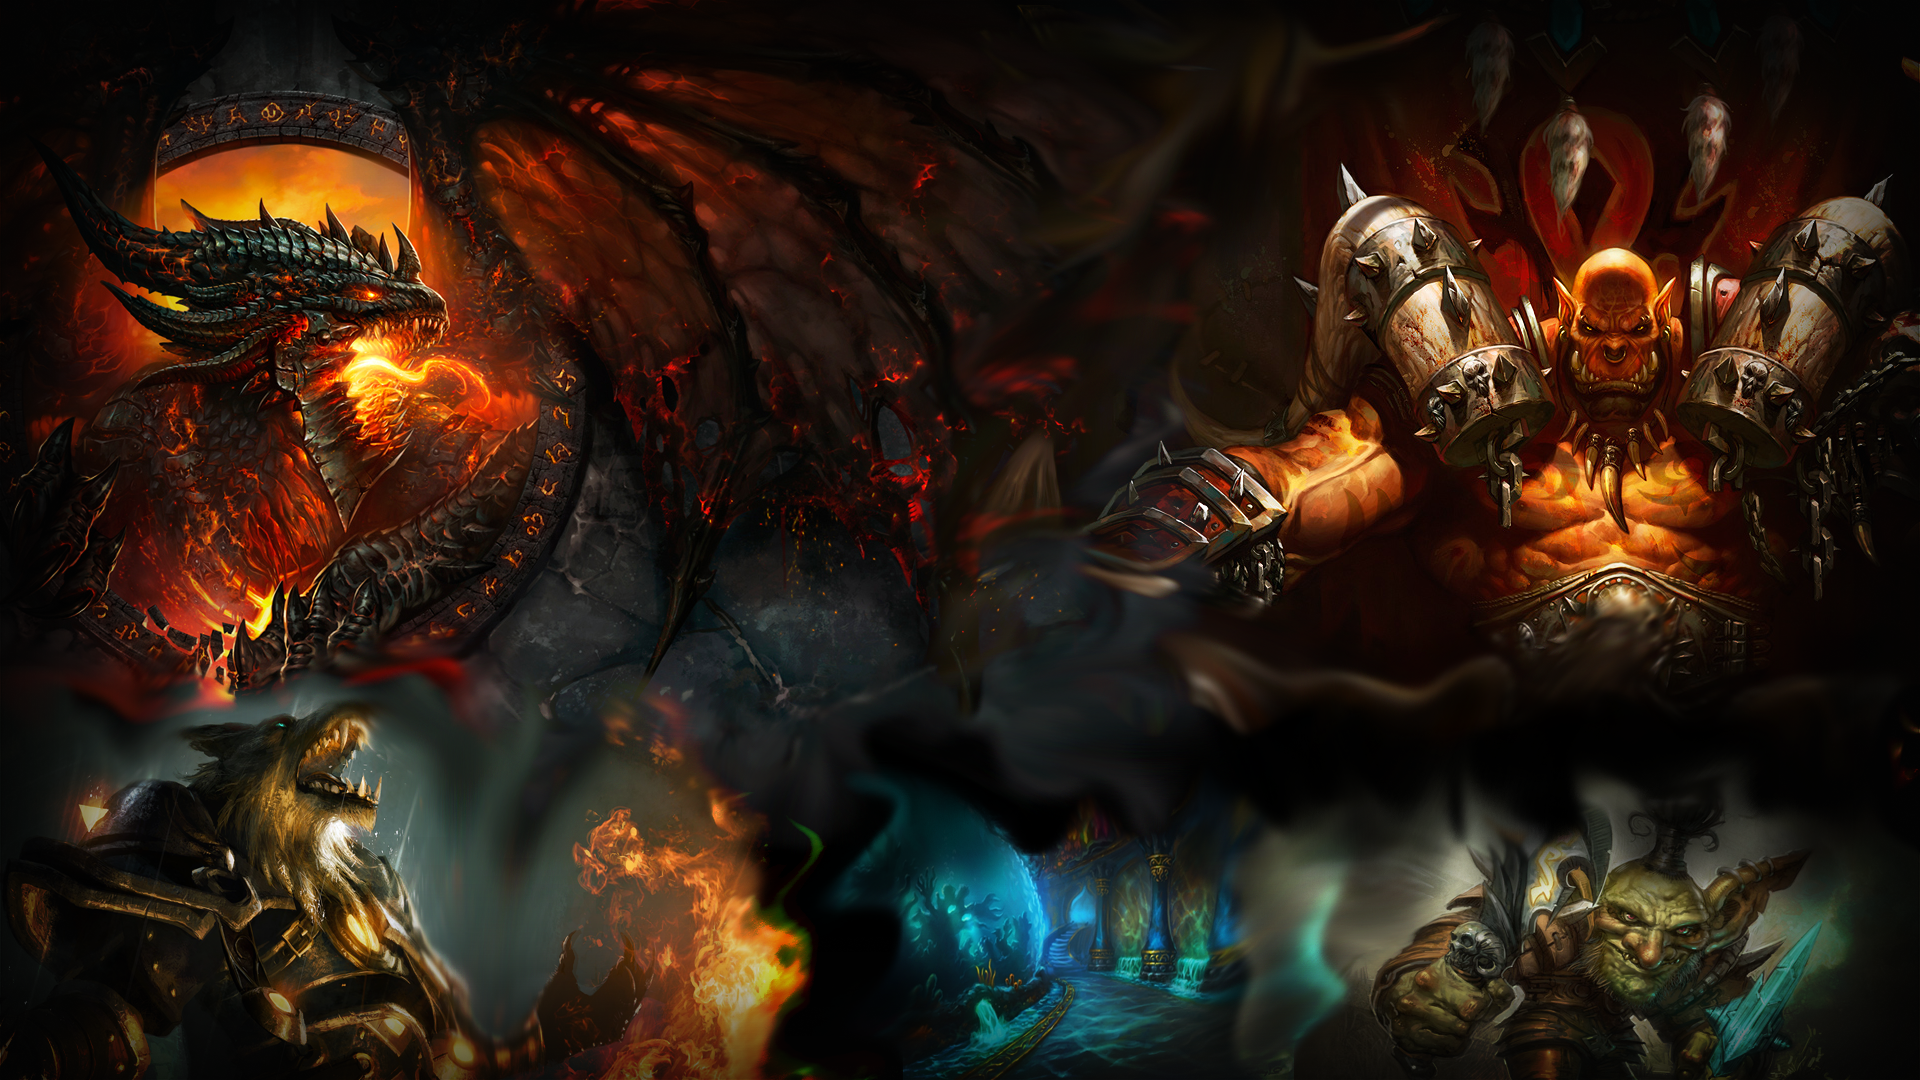 WoW Wallpaper 1920x1080 by CHIPINATORs